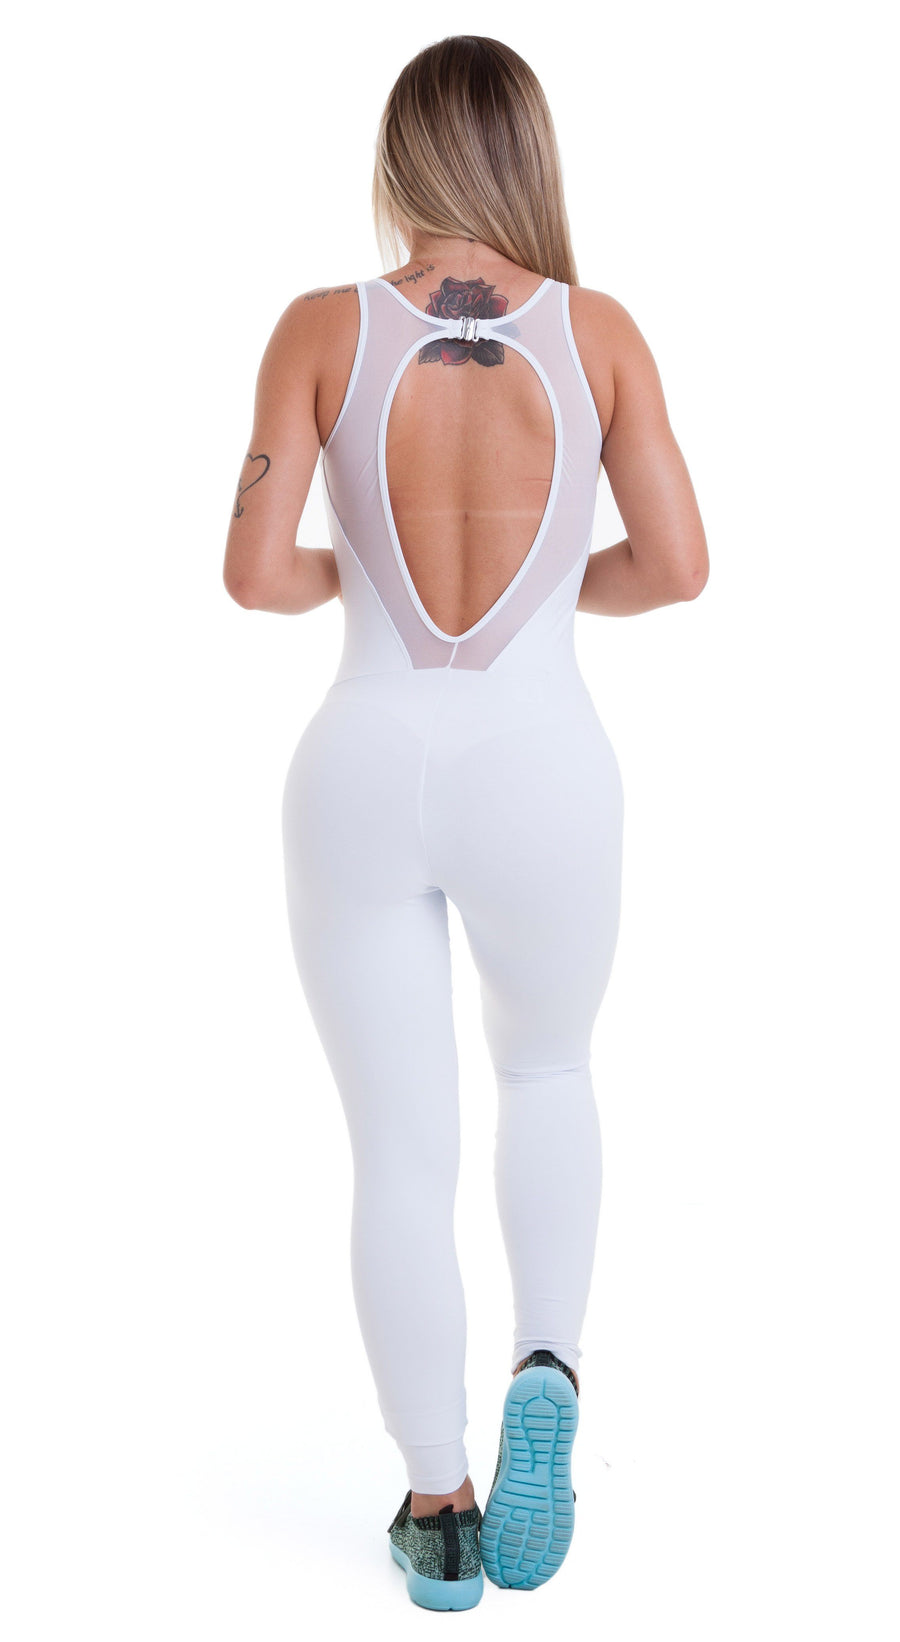 Brazilian Workout Jumpsuit - Emana Charm White